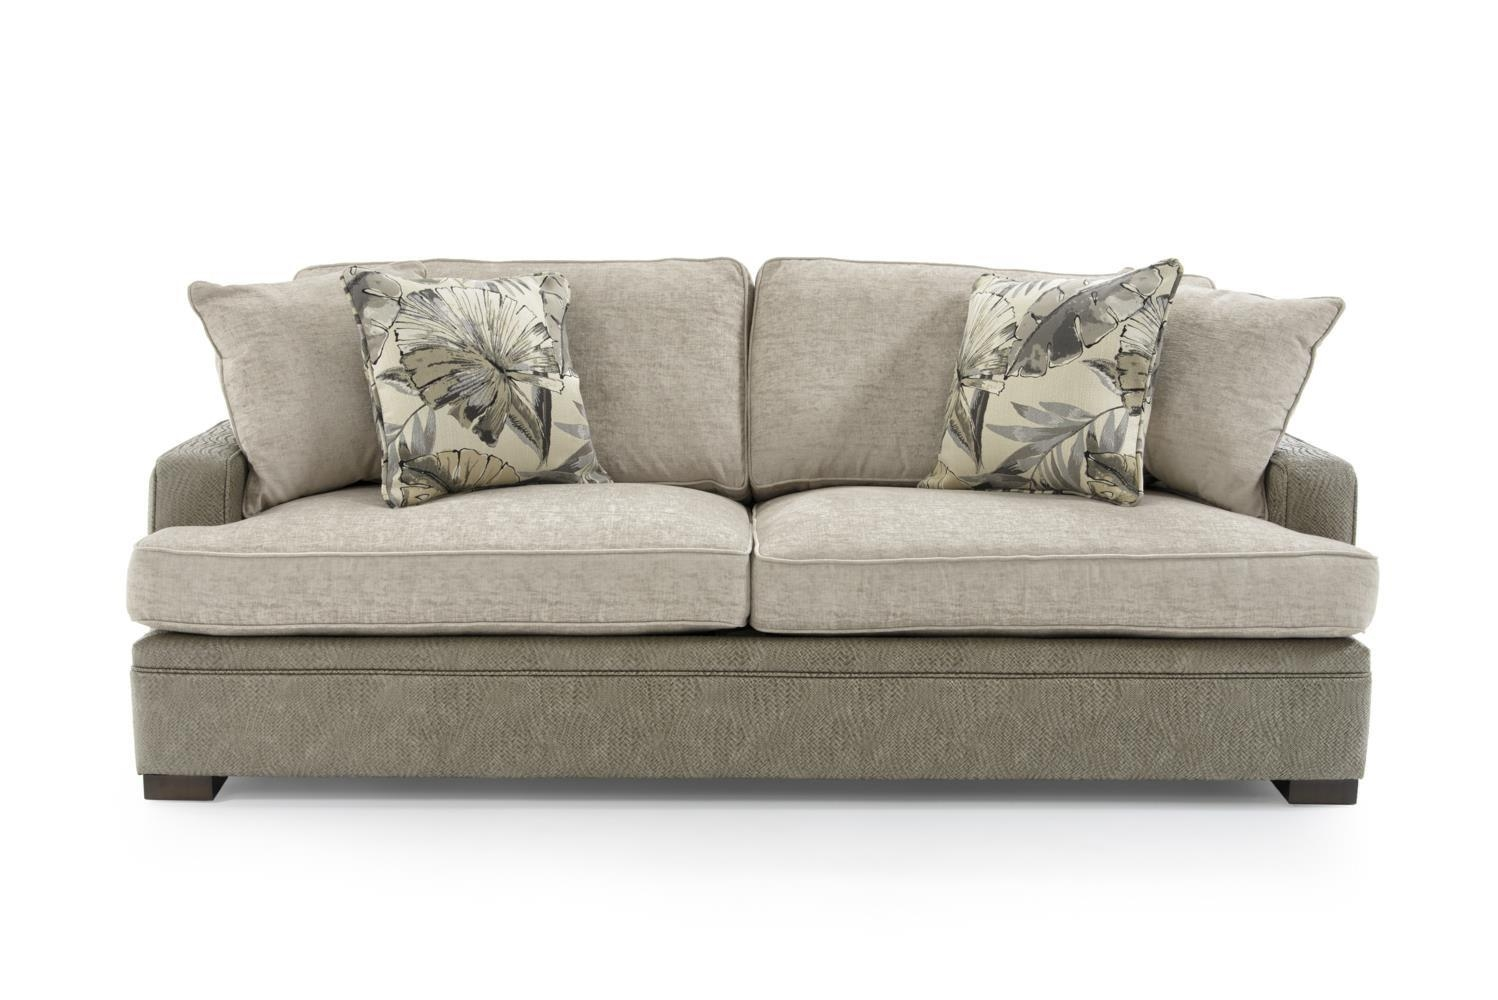 Braxton Culler Westchester Casual Track Arm Sofa – Baer's Intended For Braxton Culler Sofas (Image 17 of 20)